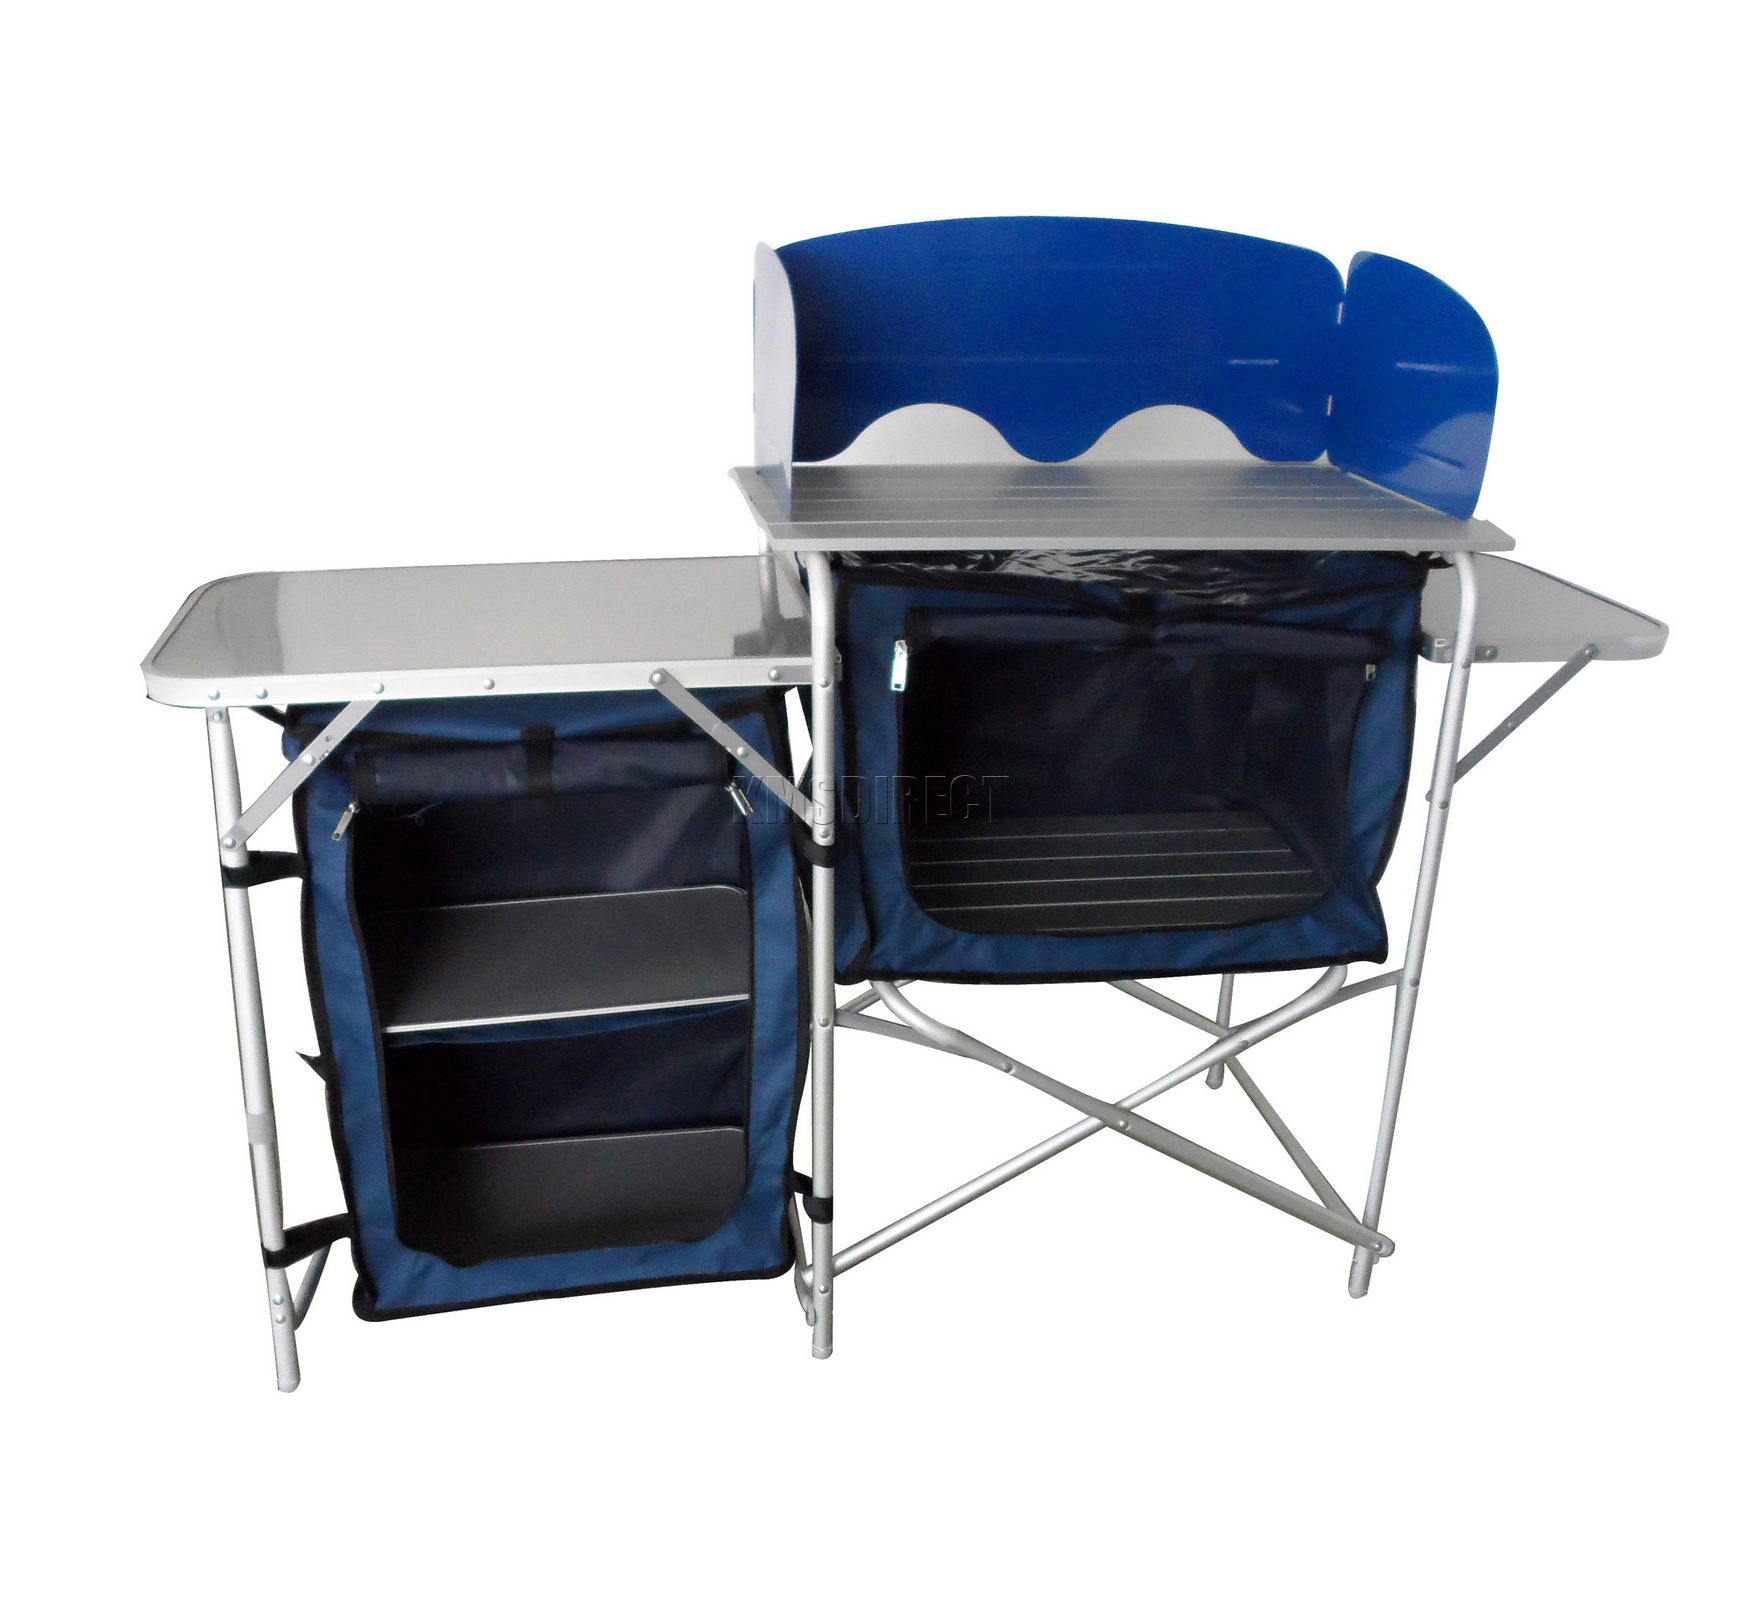 Folding camping kitchen table stand 3 rooms cupboard for Portable garden room